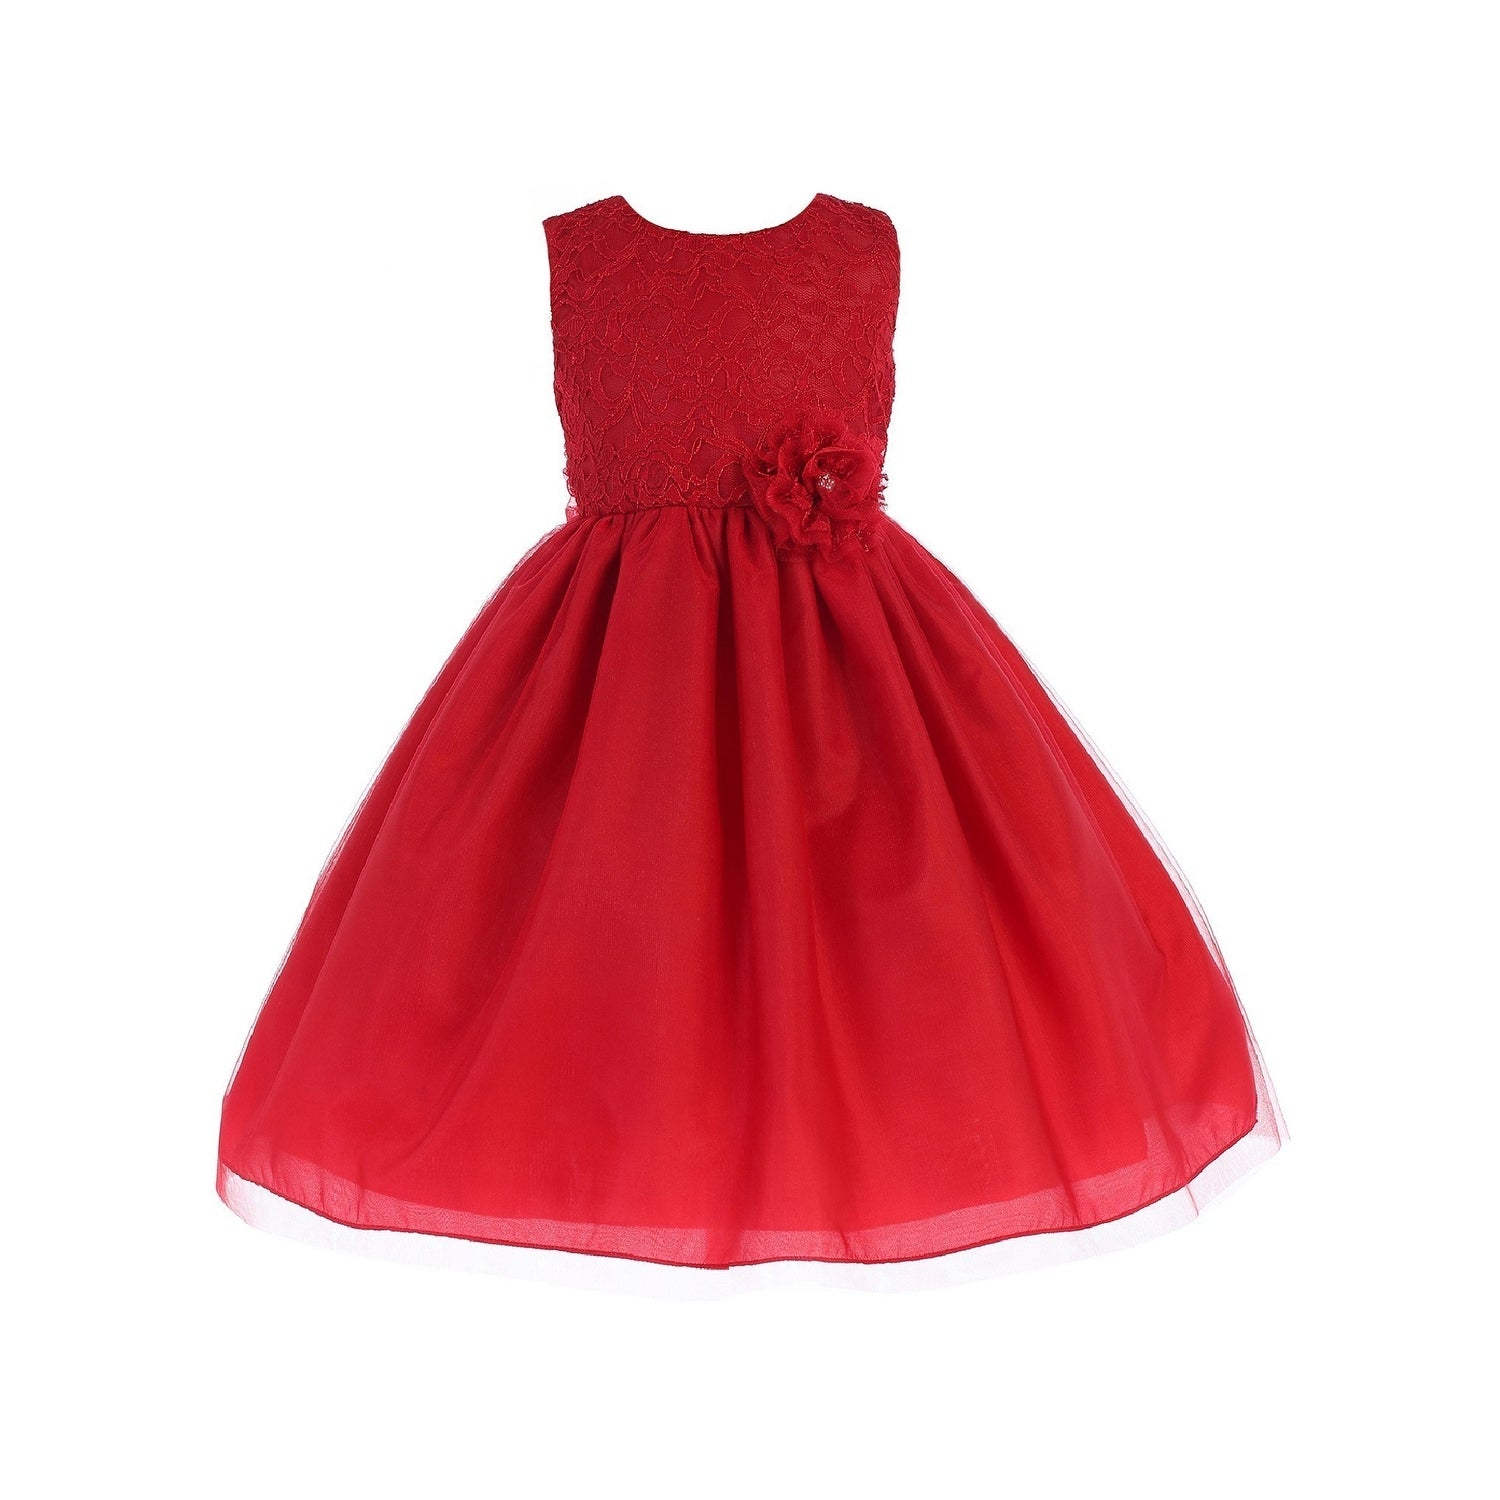 59271cc66a Shop Crayon Kids Little Girls Red Lace Flower Bow Flower Girl Dress 4T -  Free Shipping Today - Overstock - 23140532